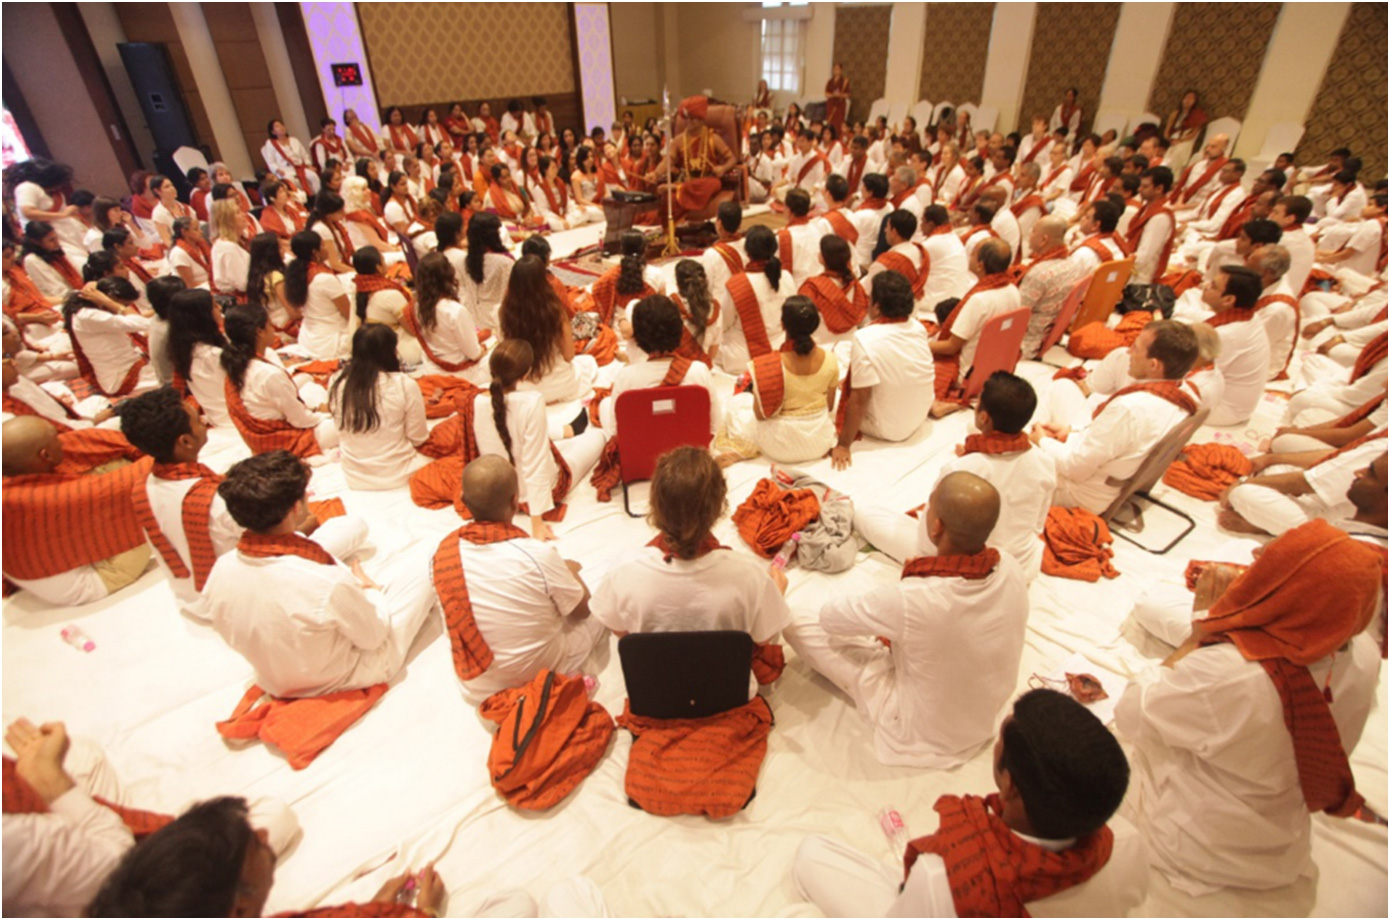 SwamijiEnlightening the world through conducting a meditation workshop with devotees from all walks of life, countries, religions, origins, and backgrounds.